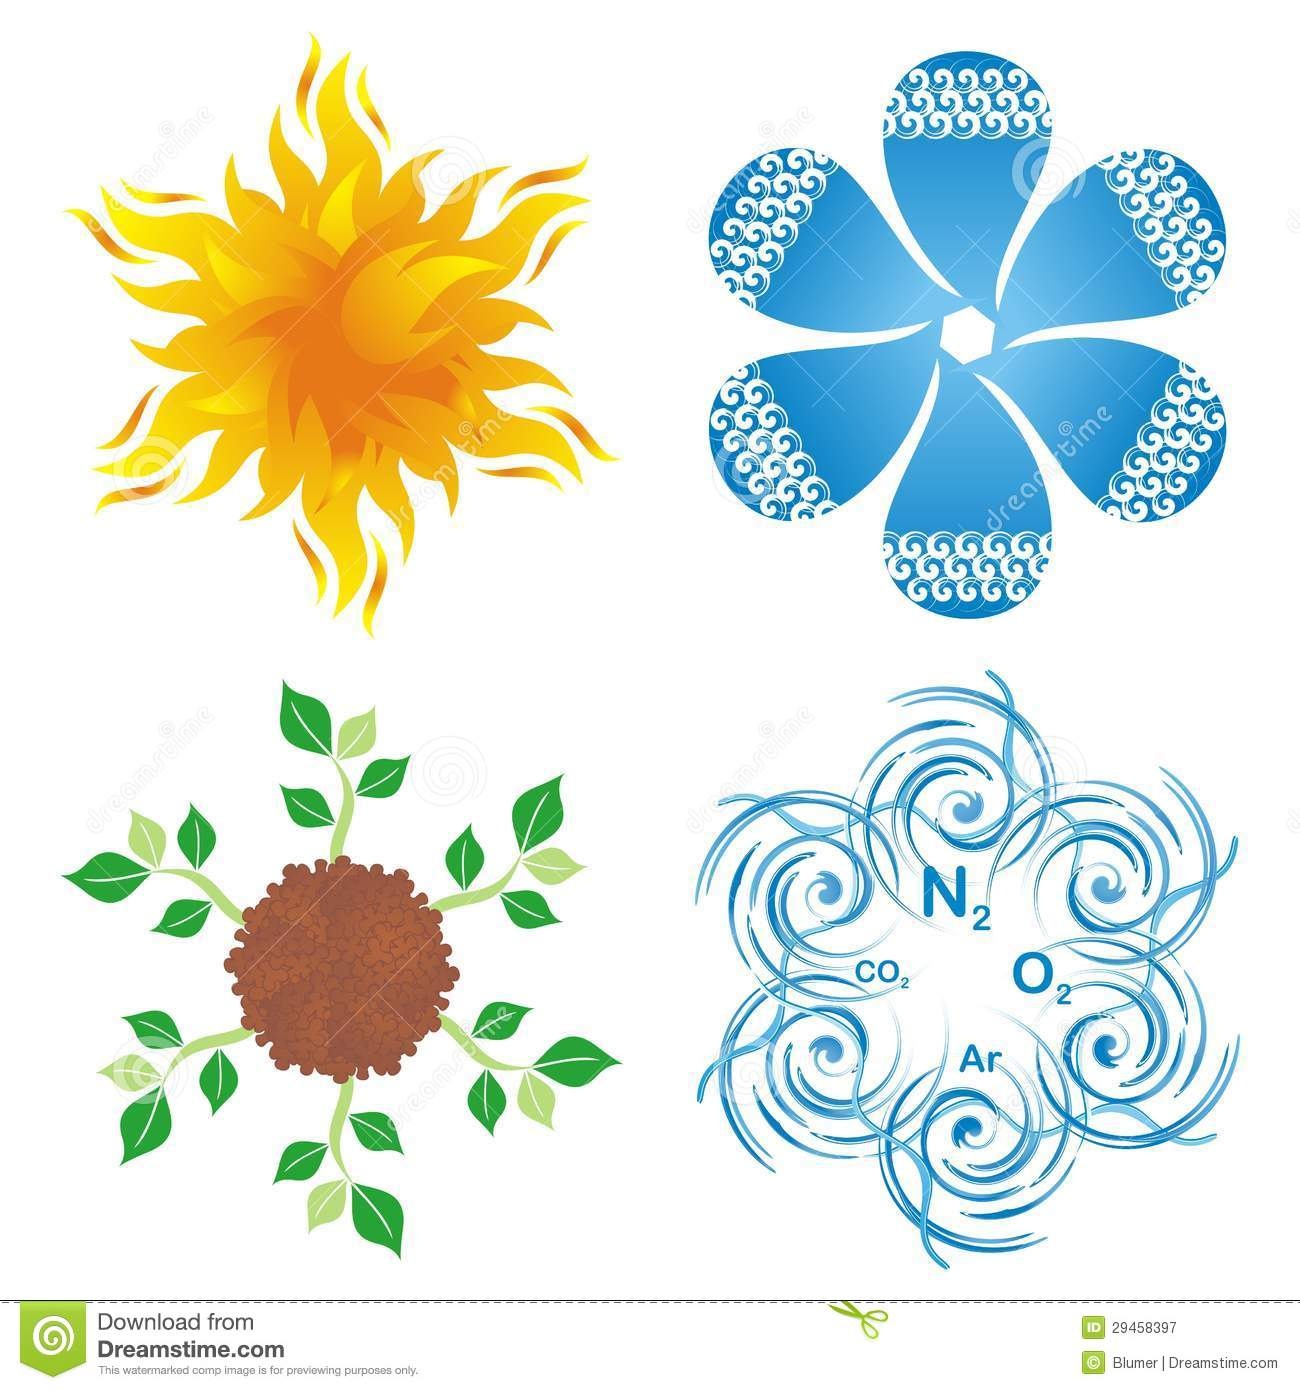 ... blossom-like symbols of four elements, earth, water, air and fire